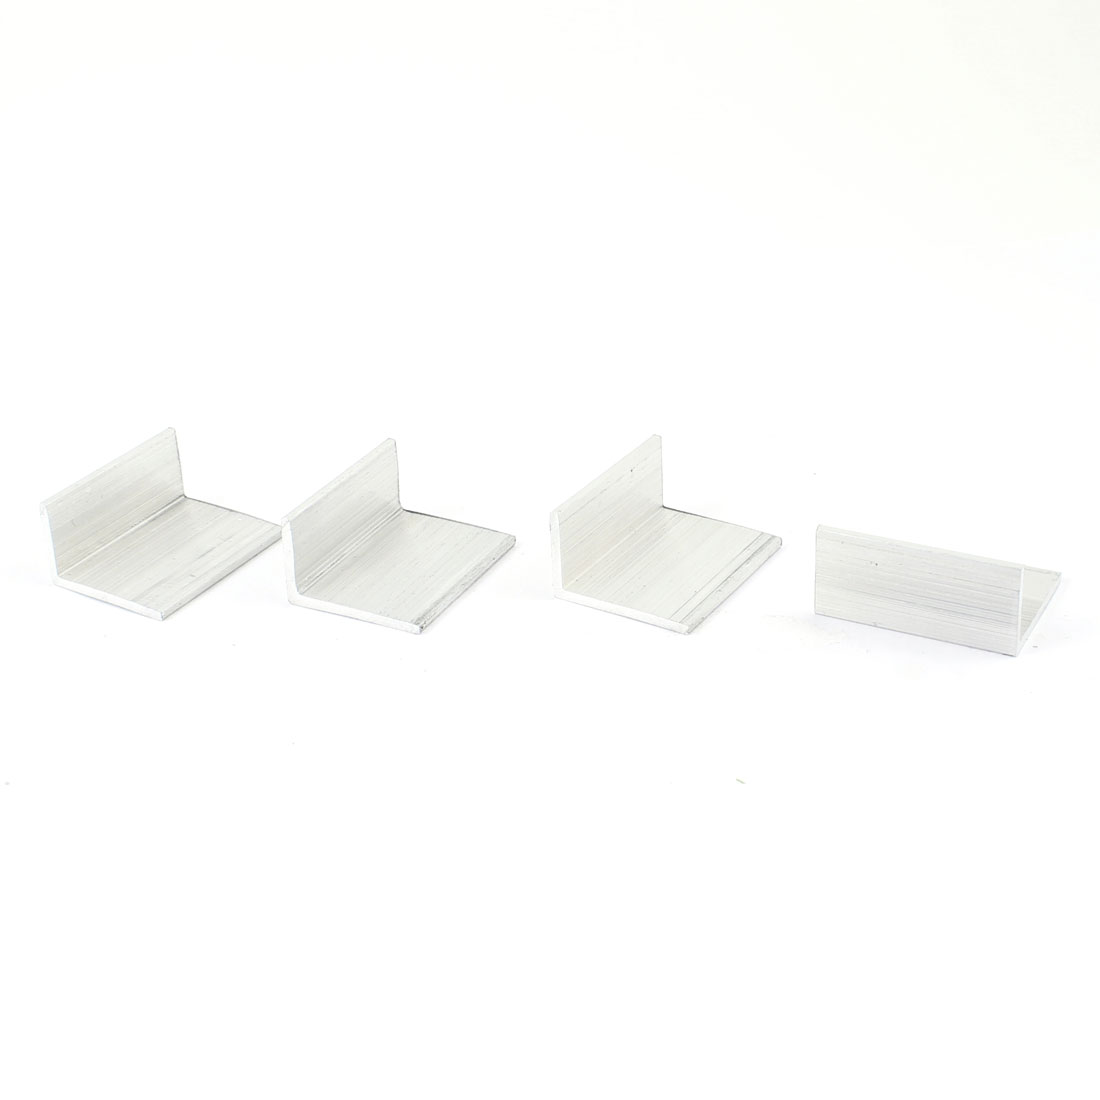 4 Pcs 34mm x 16mm x 26mm 90 Degree Angle Aluminum Alloy Shelf Bracket